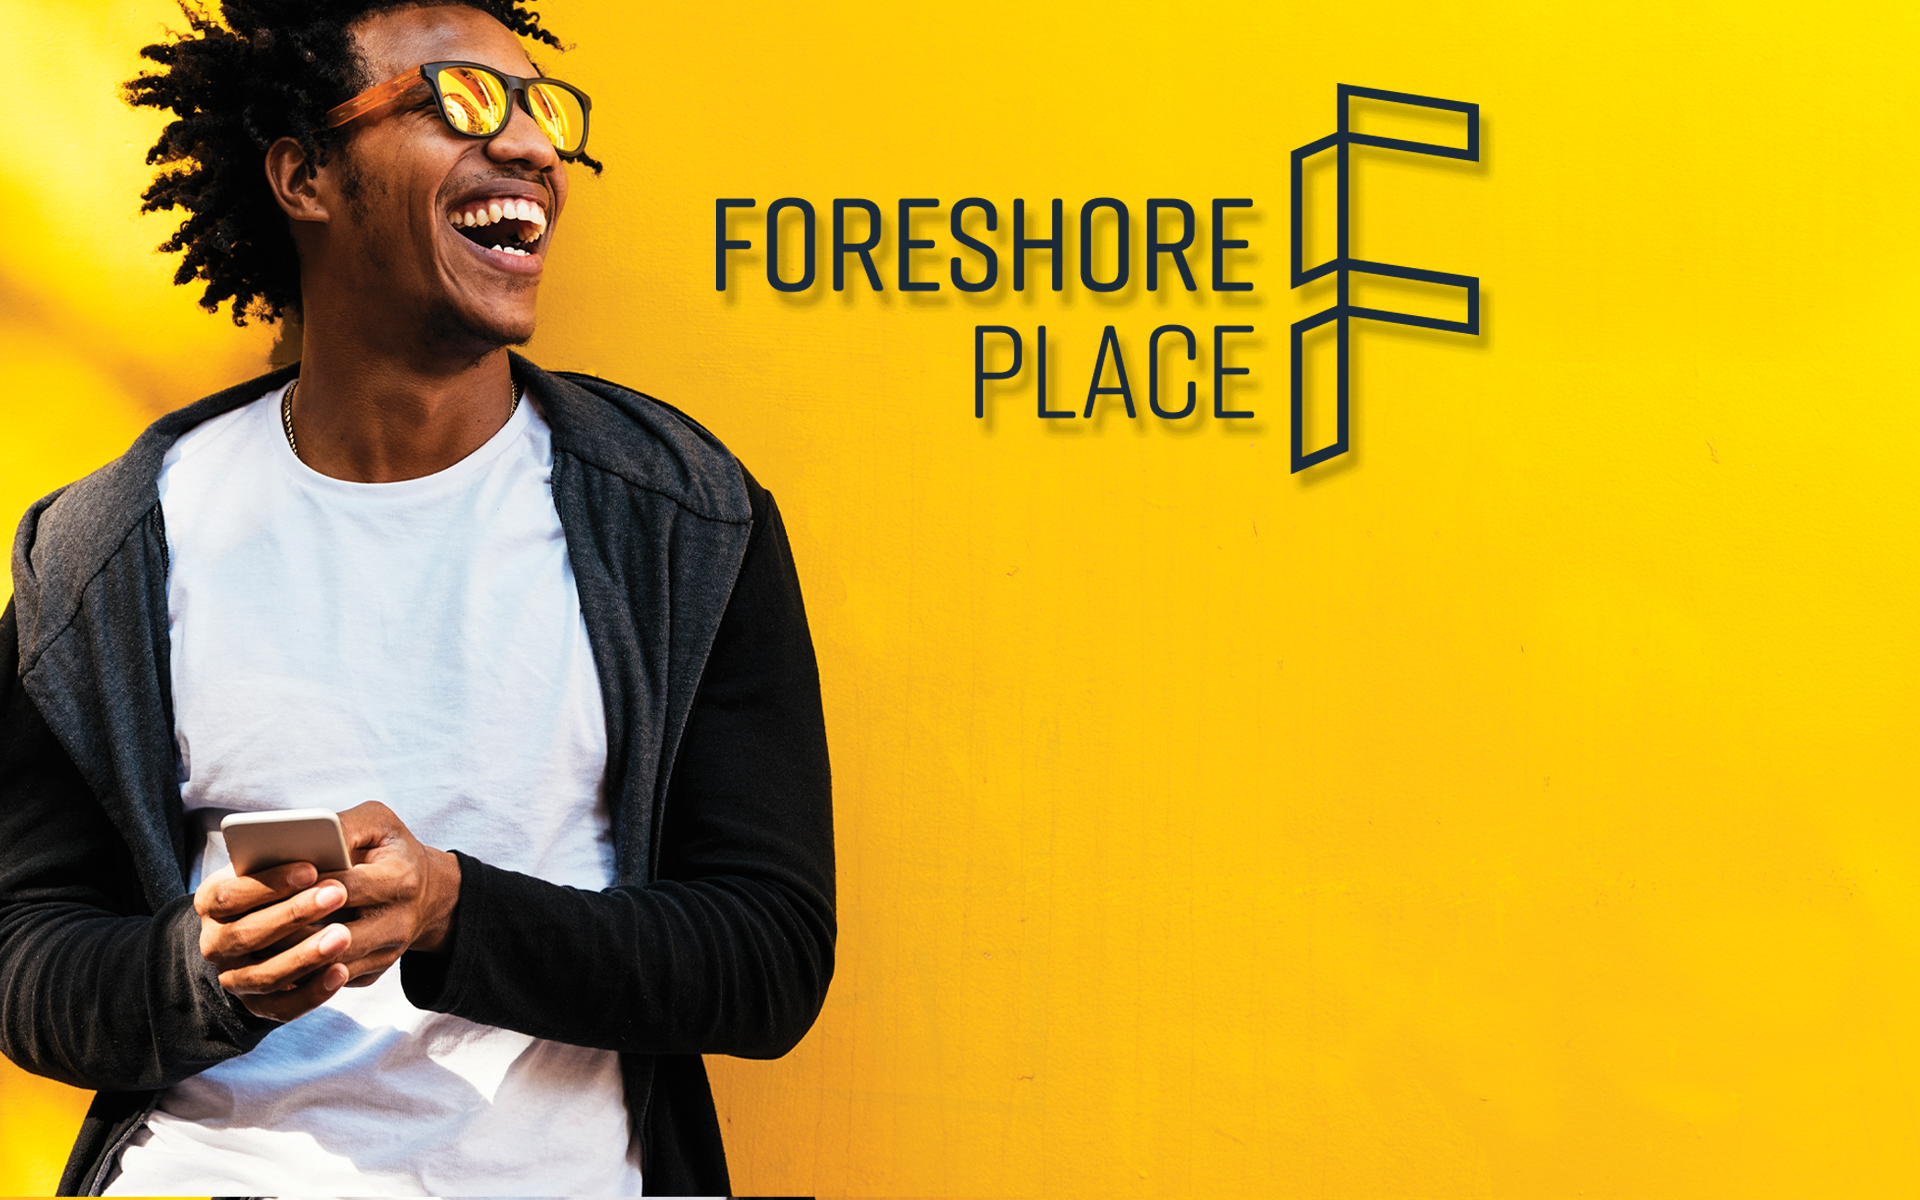 Foreshore place property branding featured project